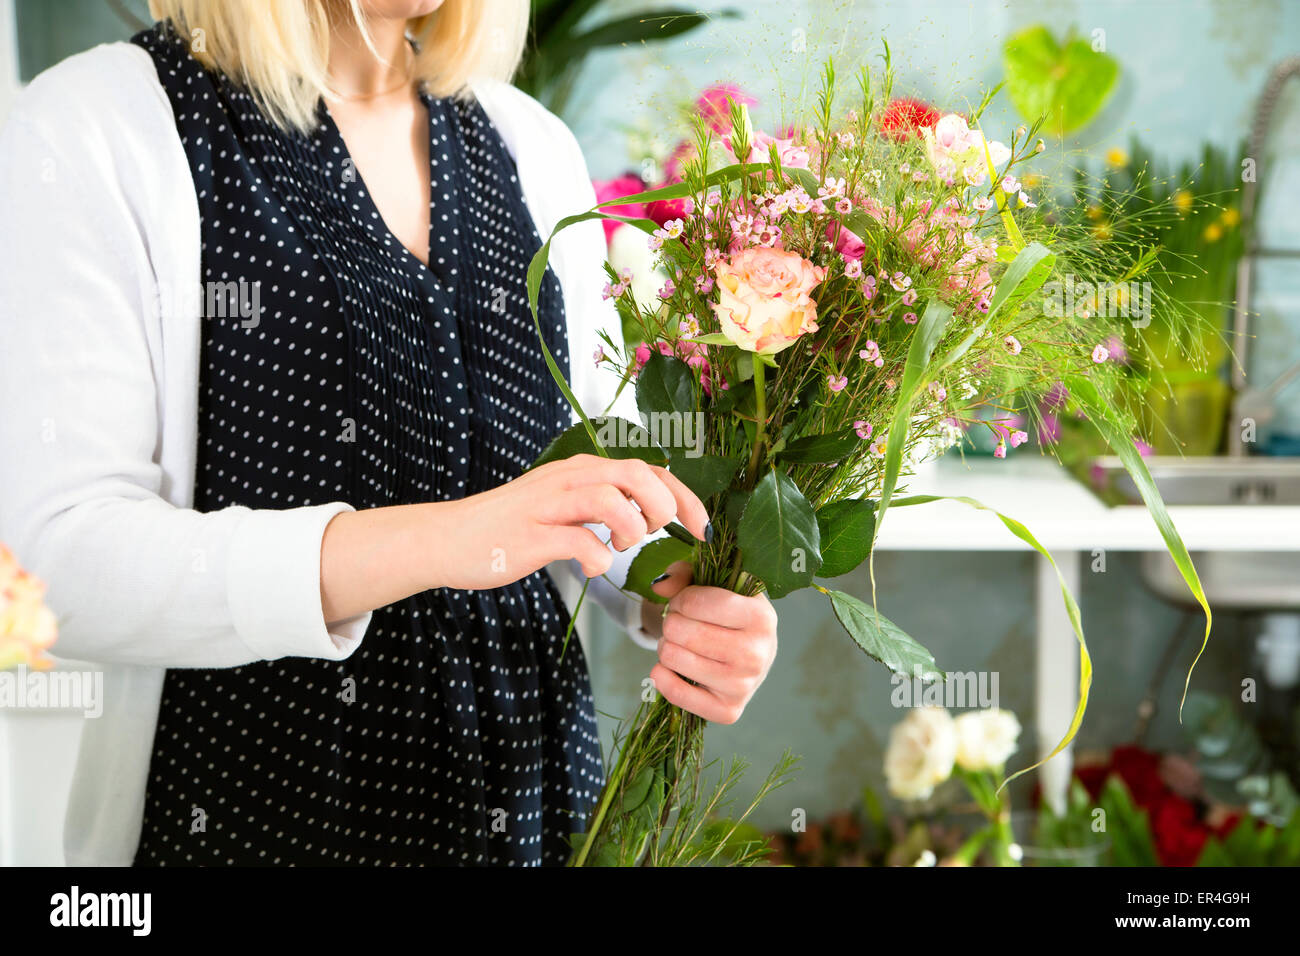 A young woman finishing beloved floral composition - Stock Image